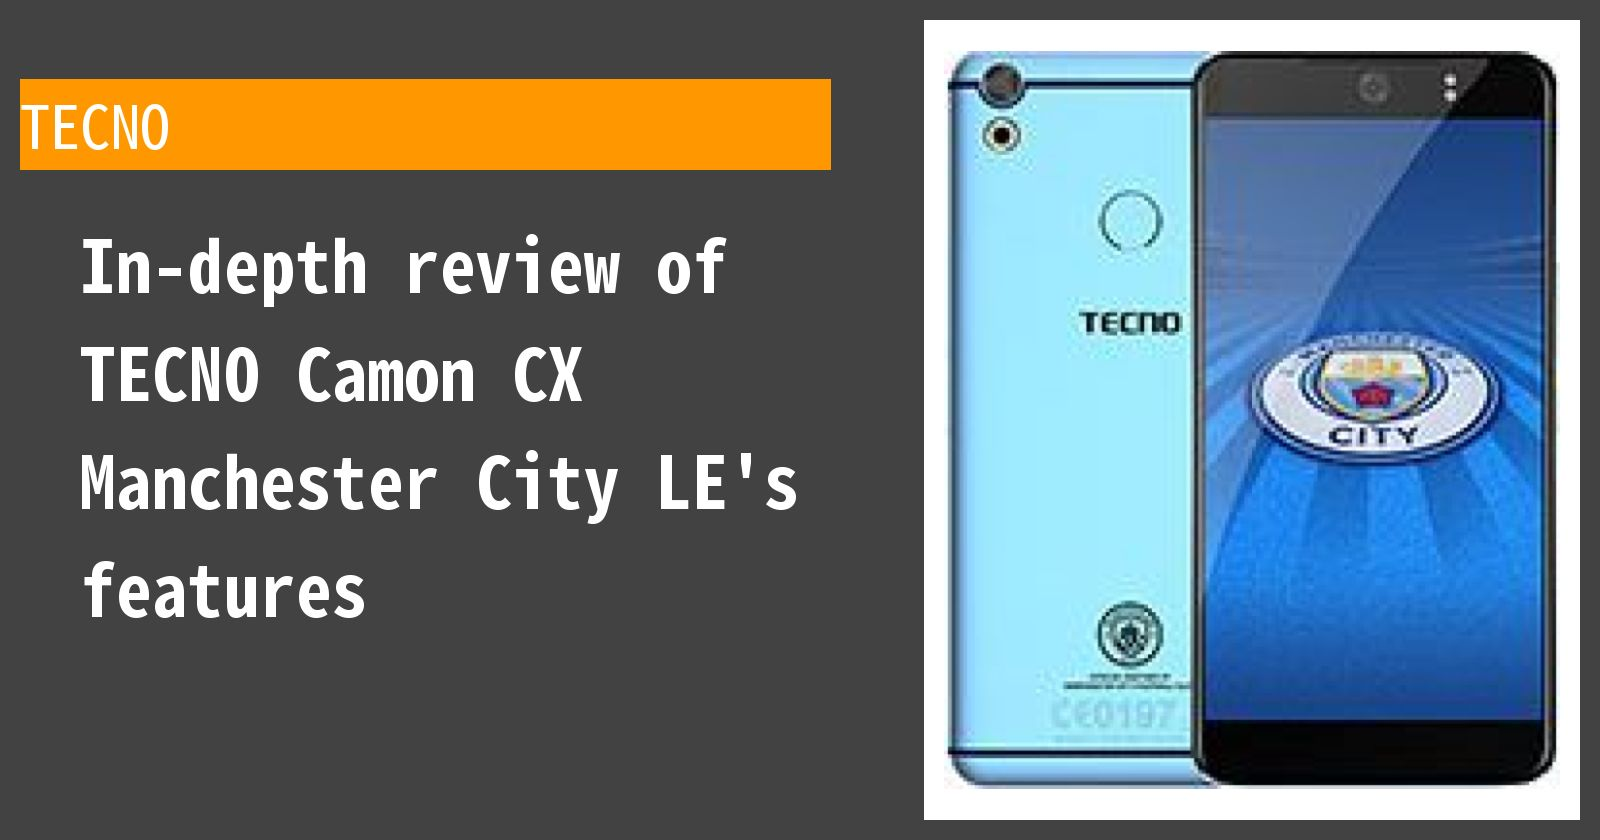 What are the advantages and disadvantages of TECNO Camon CX